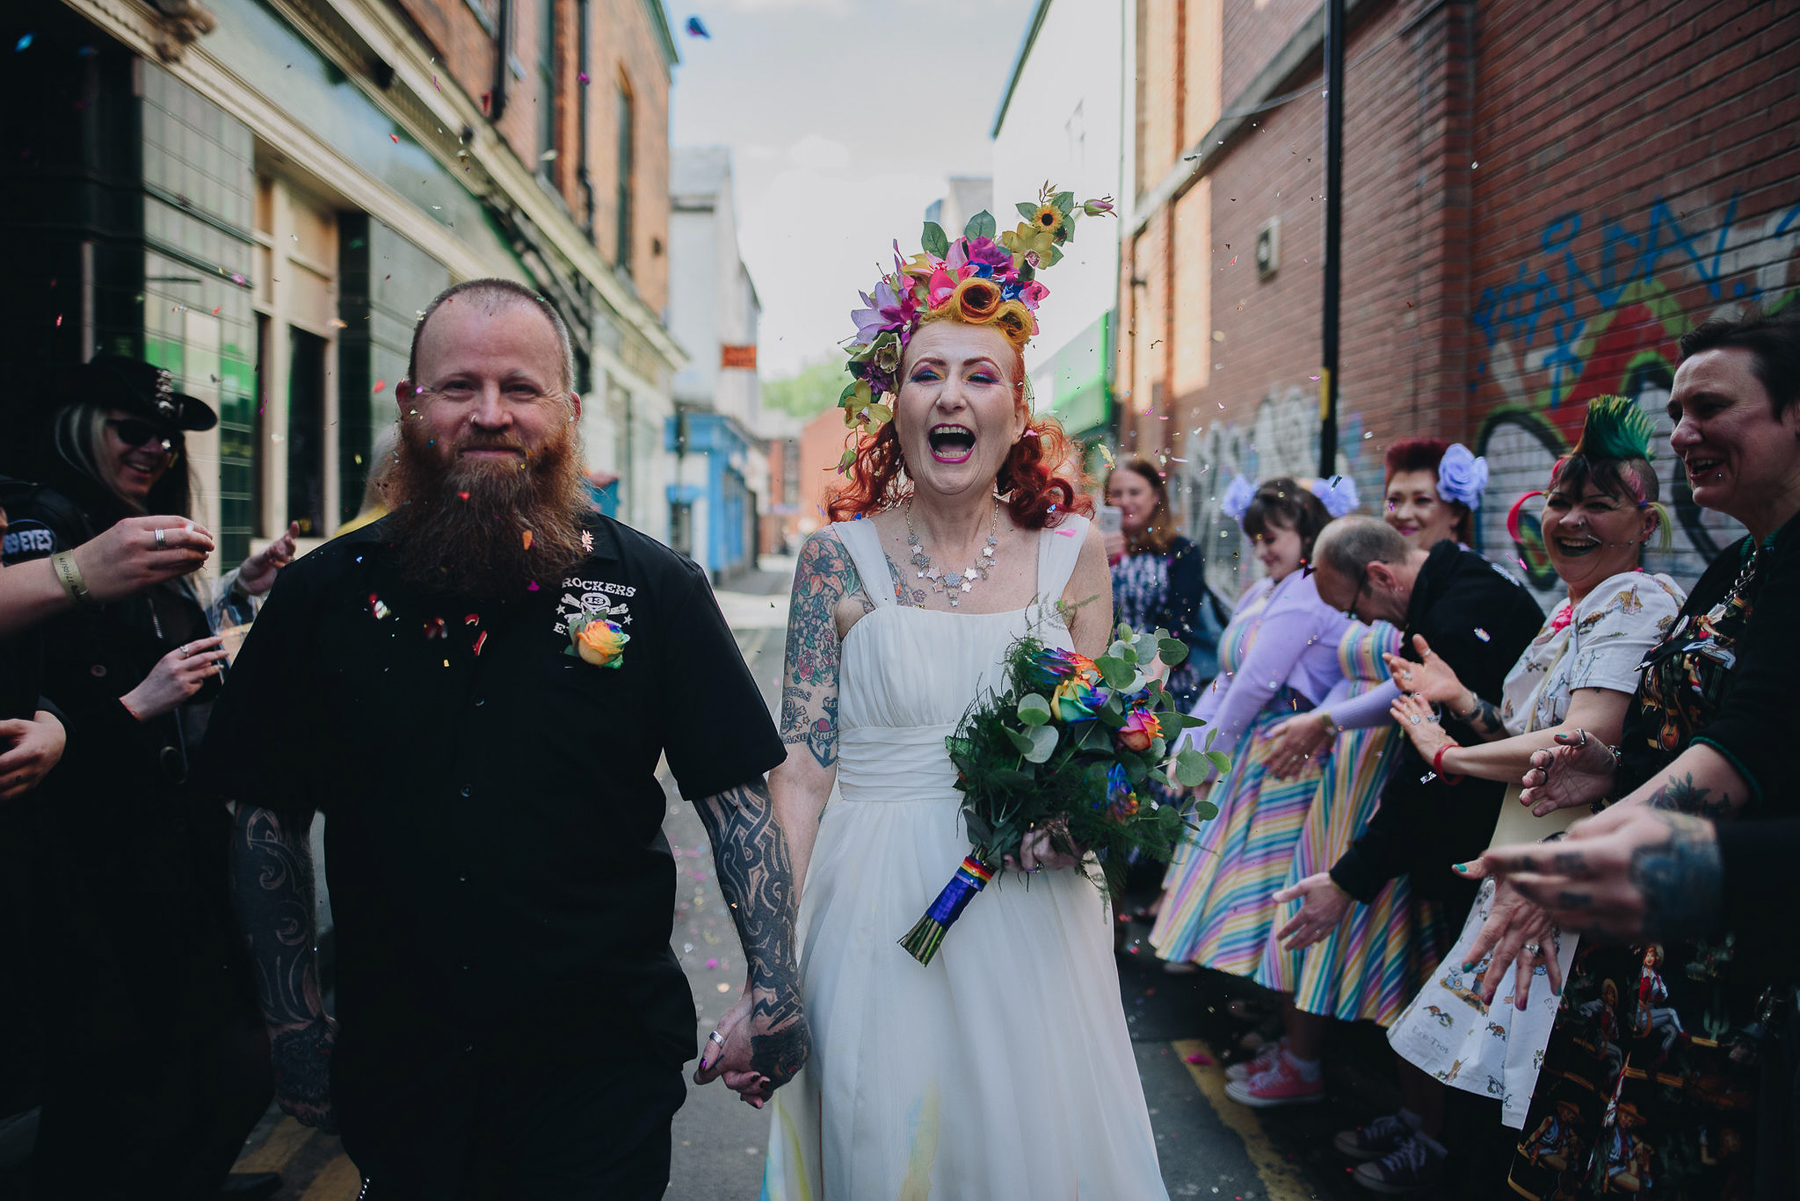 Alternative_Manchester_Northern_Quarter_Wedding_Photography_The_Pin-Up_Bride-43.jpg